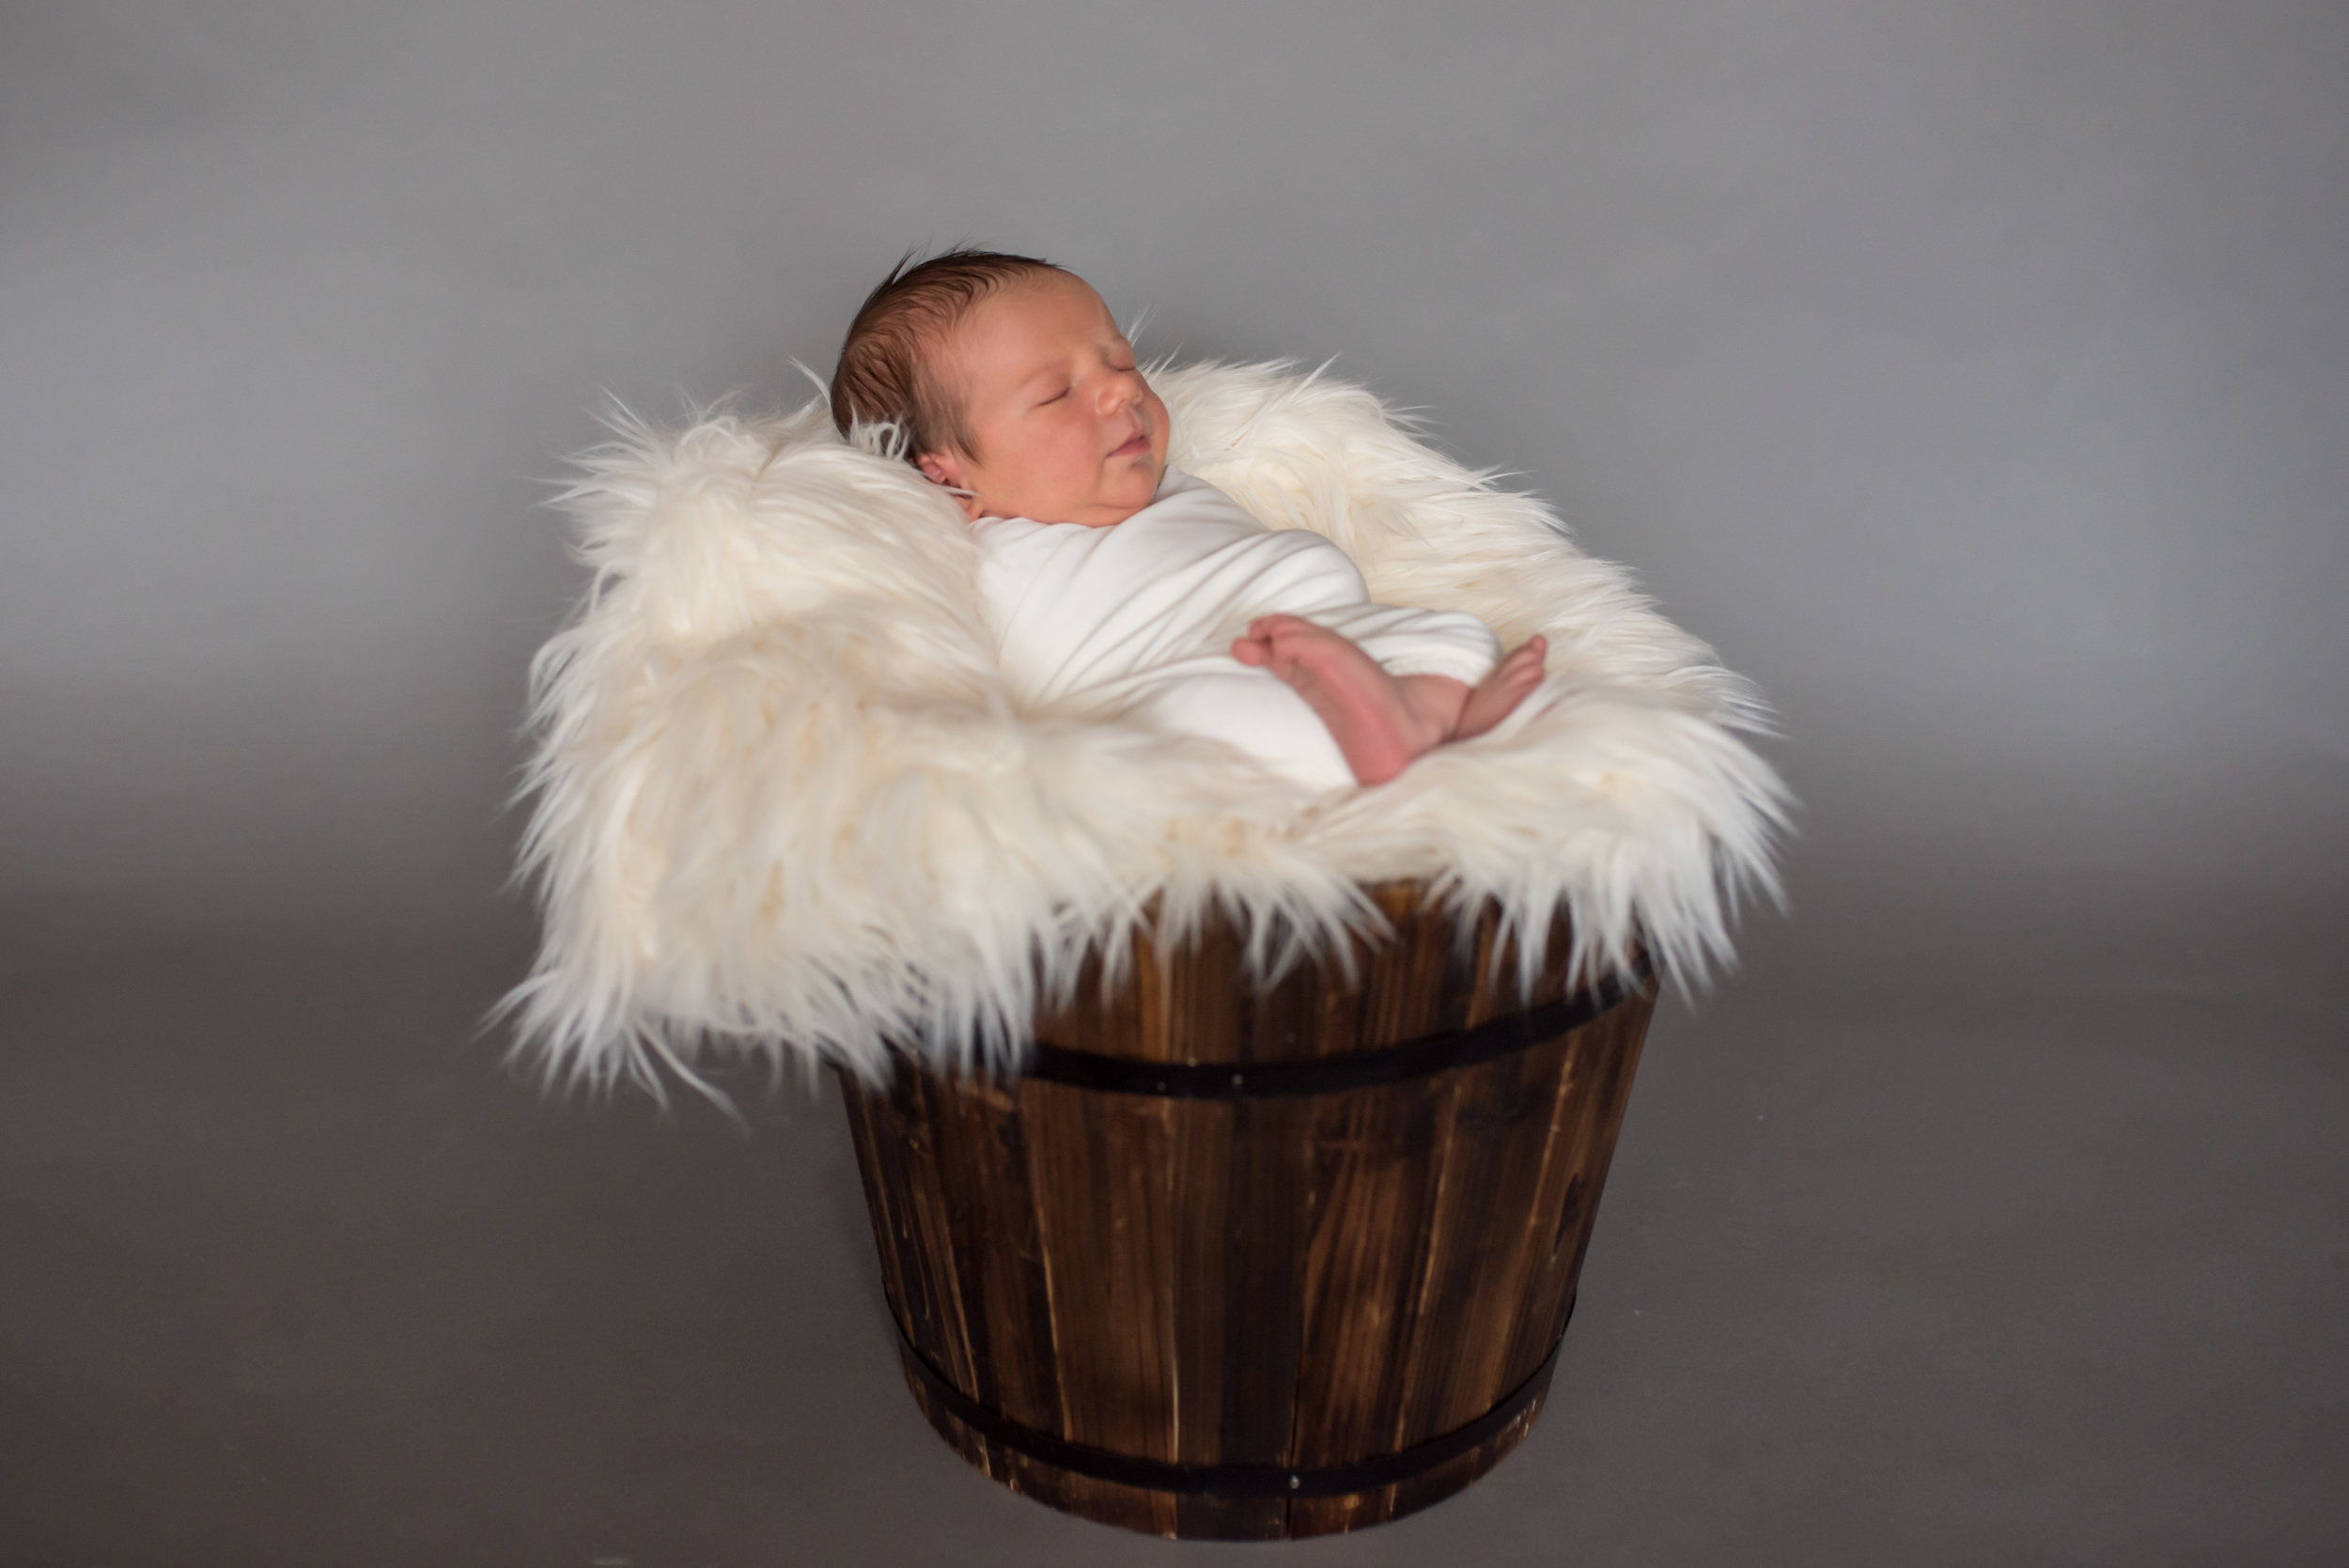 Lancashire newborn photographer